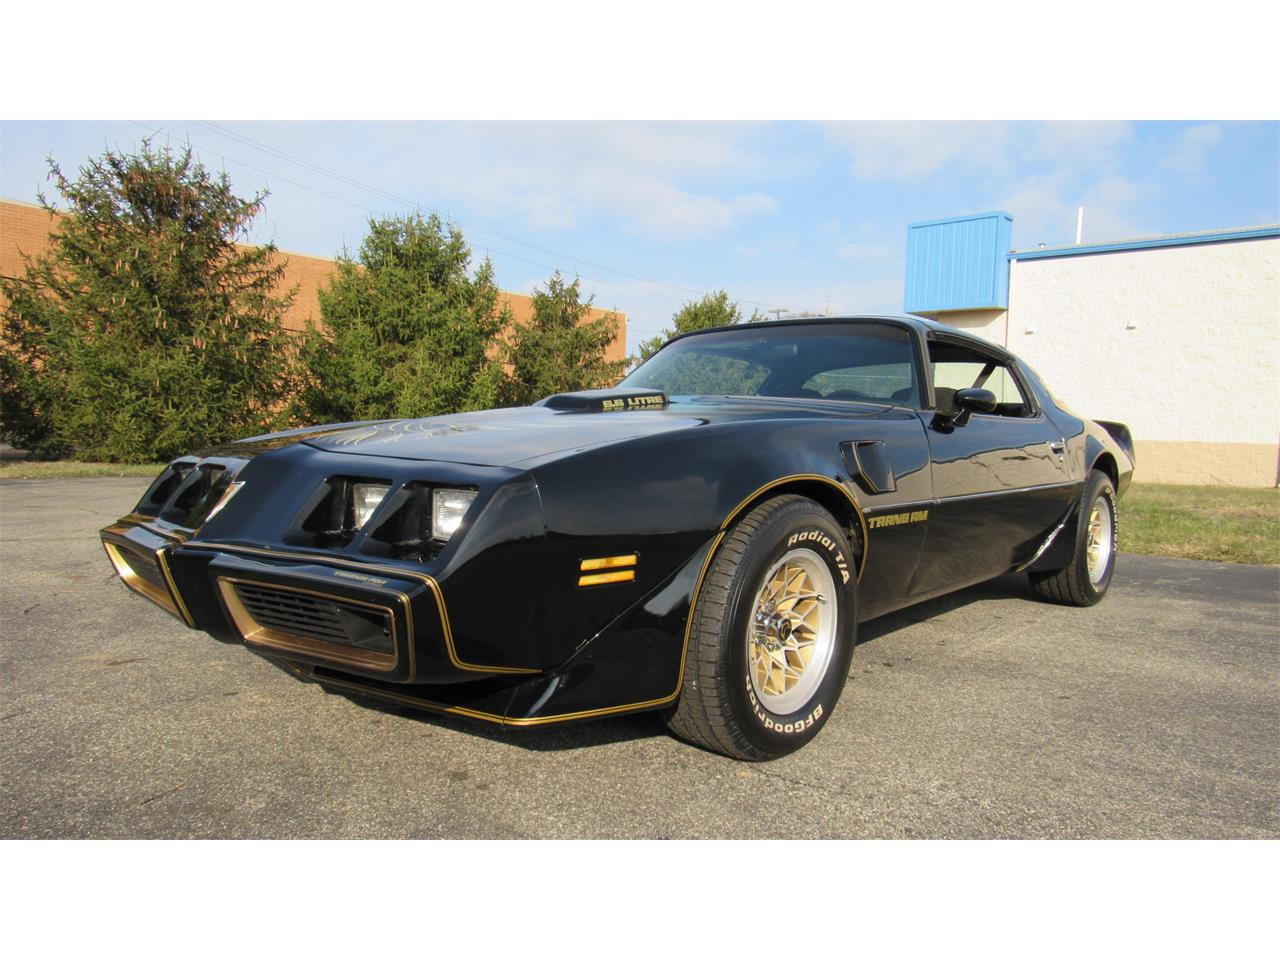 1979 Pontiac Firebird Trans Am (CC-1306392) for sale in Milford, Ohio